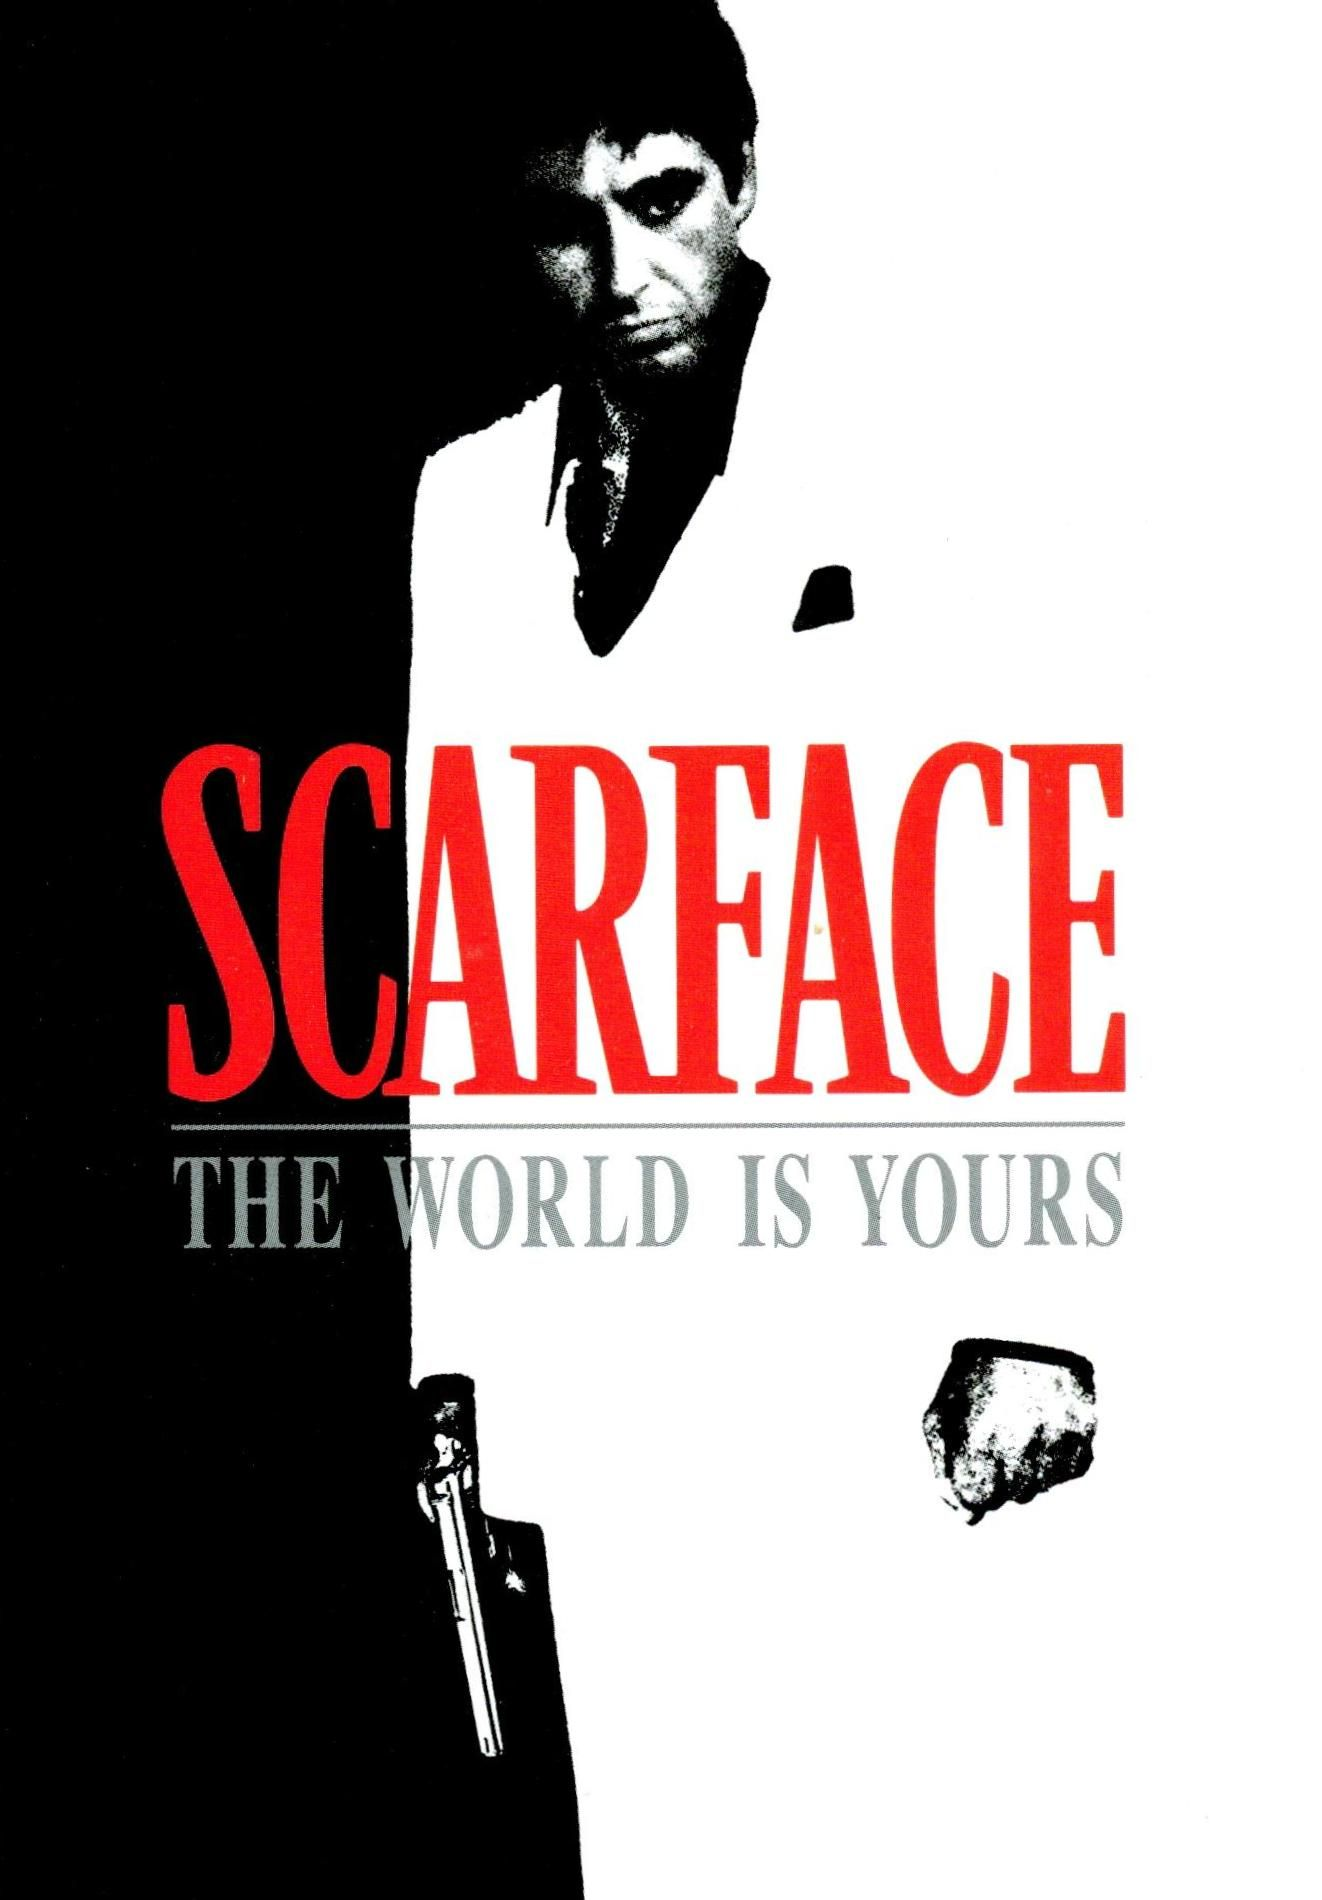 1983 Source Bing Images Scarface Crime Film Film Posters